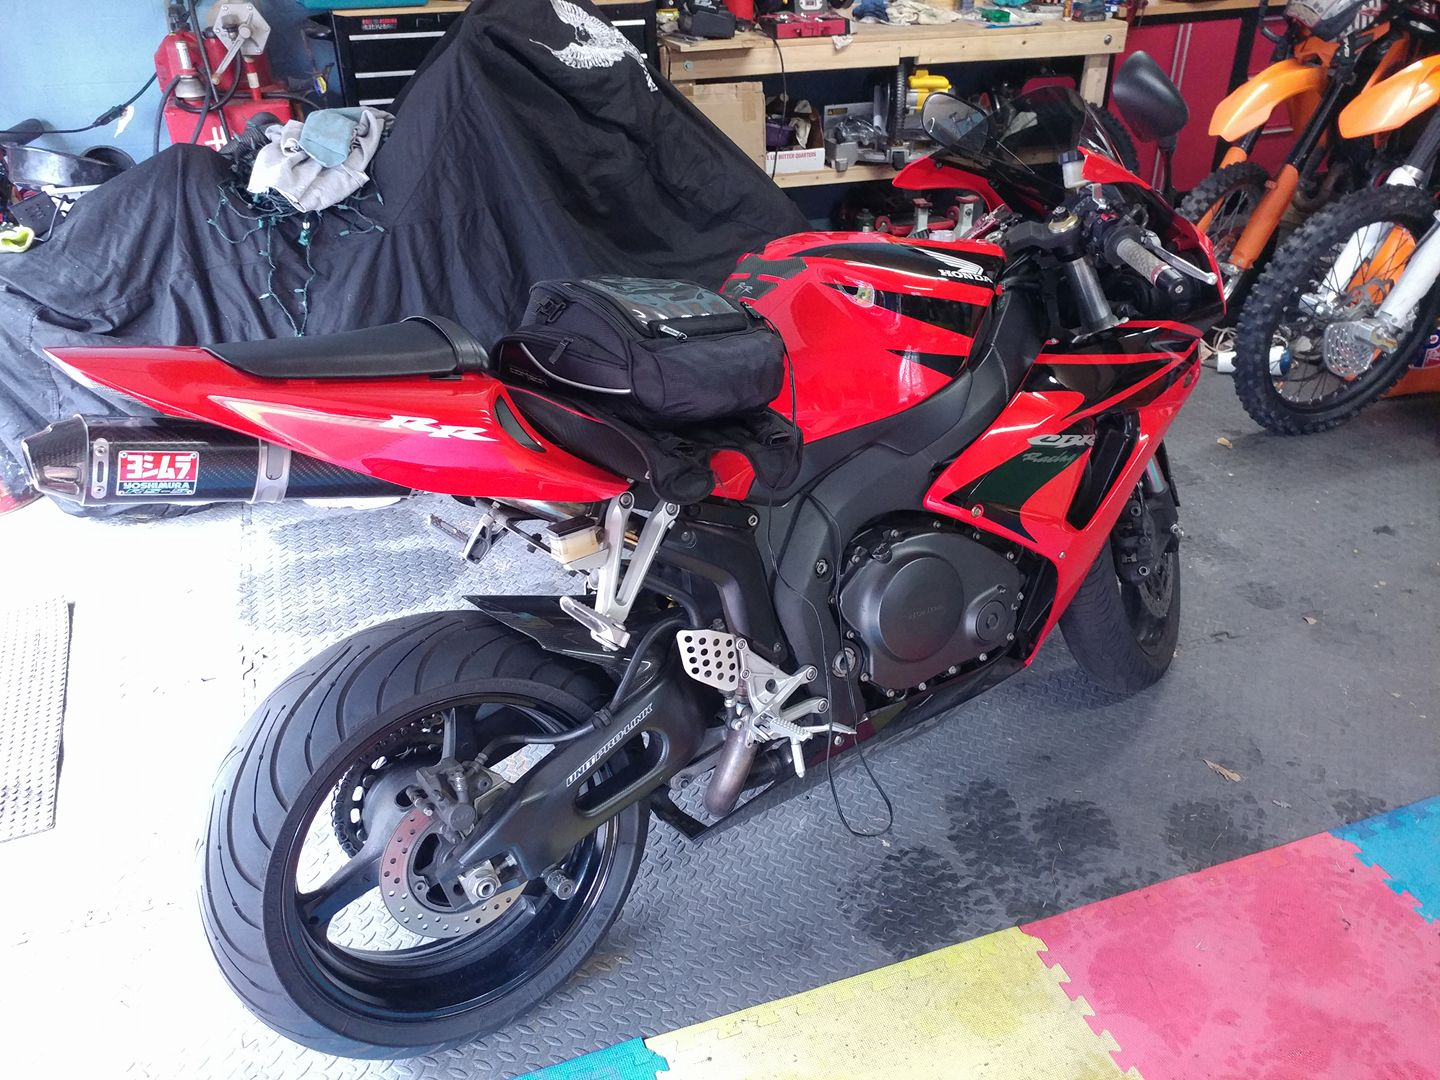 image of a sport motorcycle